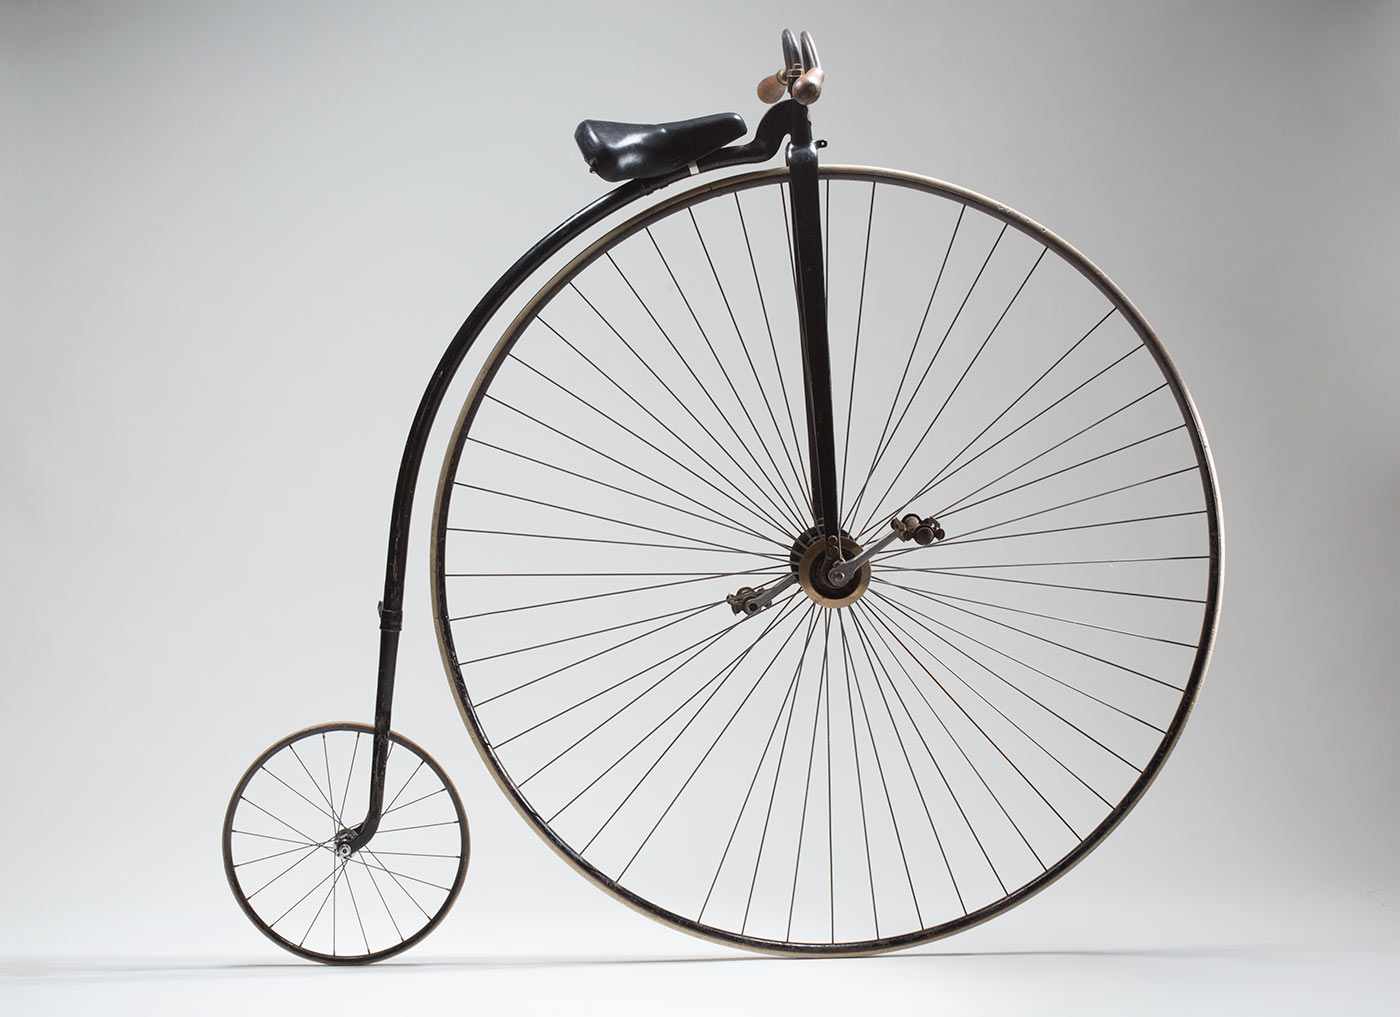 Studio image of a penny-farthing bicycle.  - click to view larger image